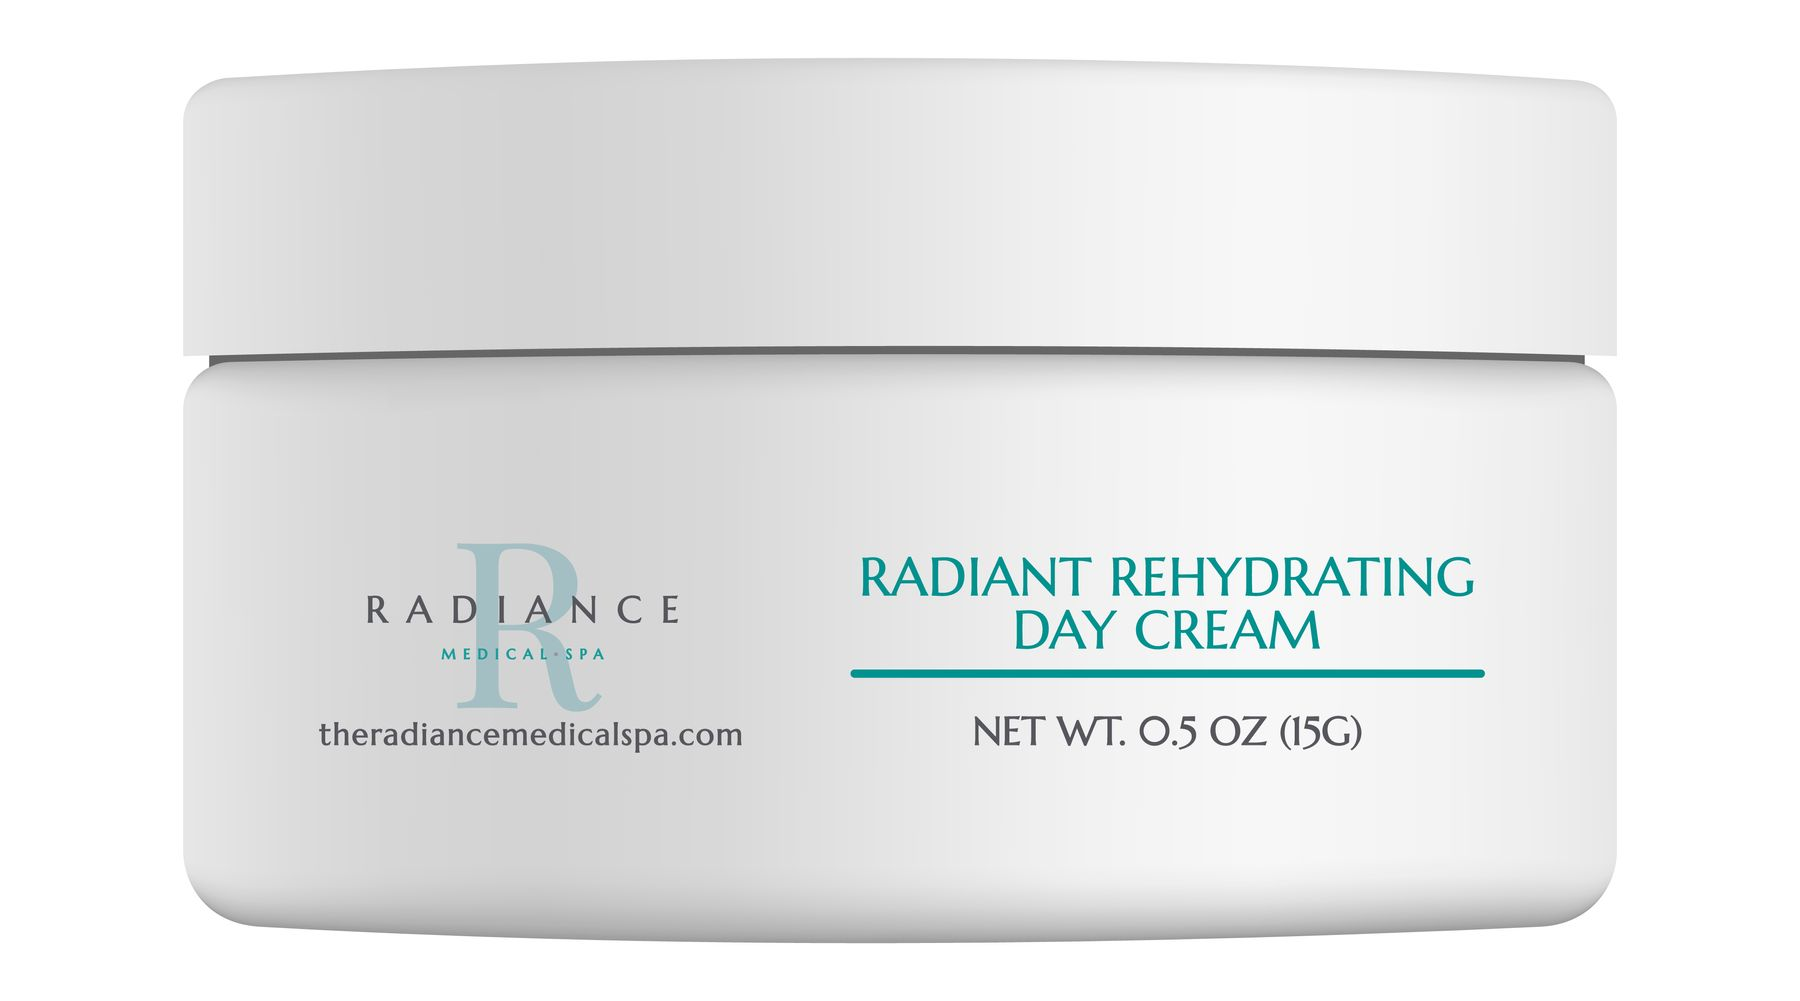 Radiant Rehydrating Day Cream